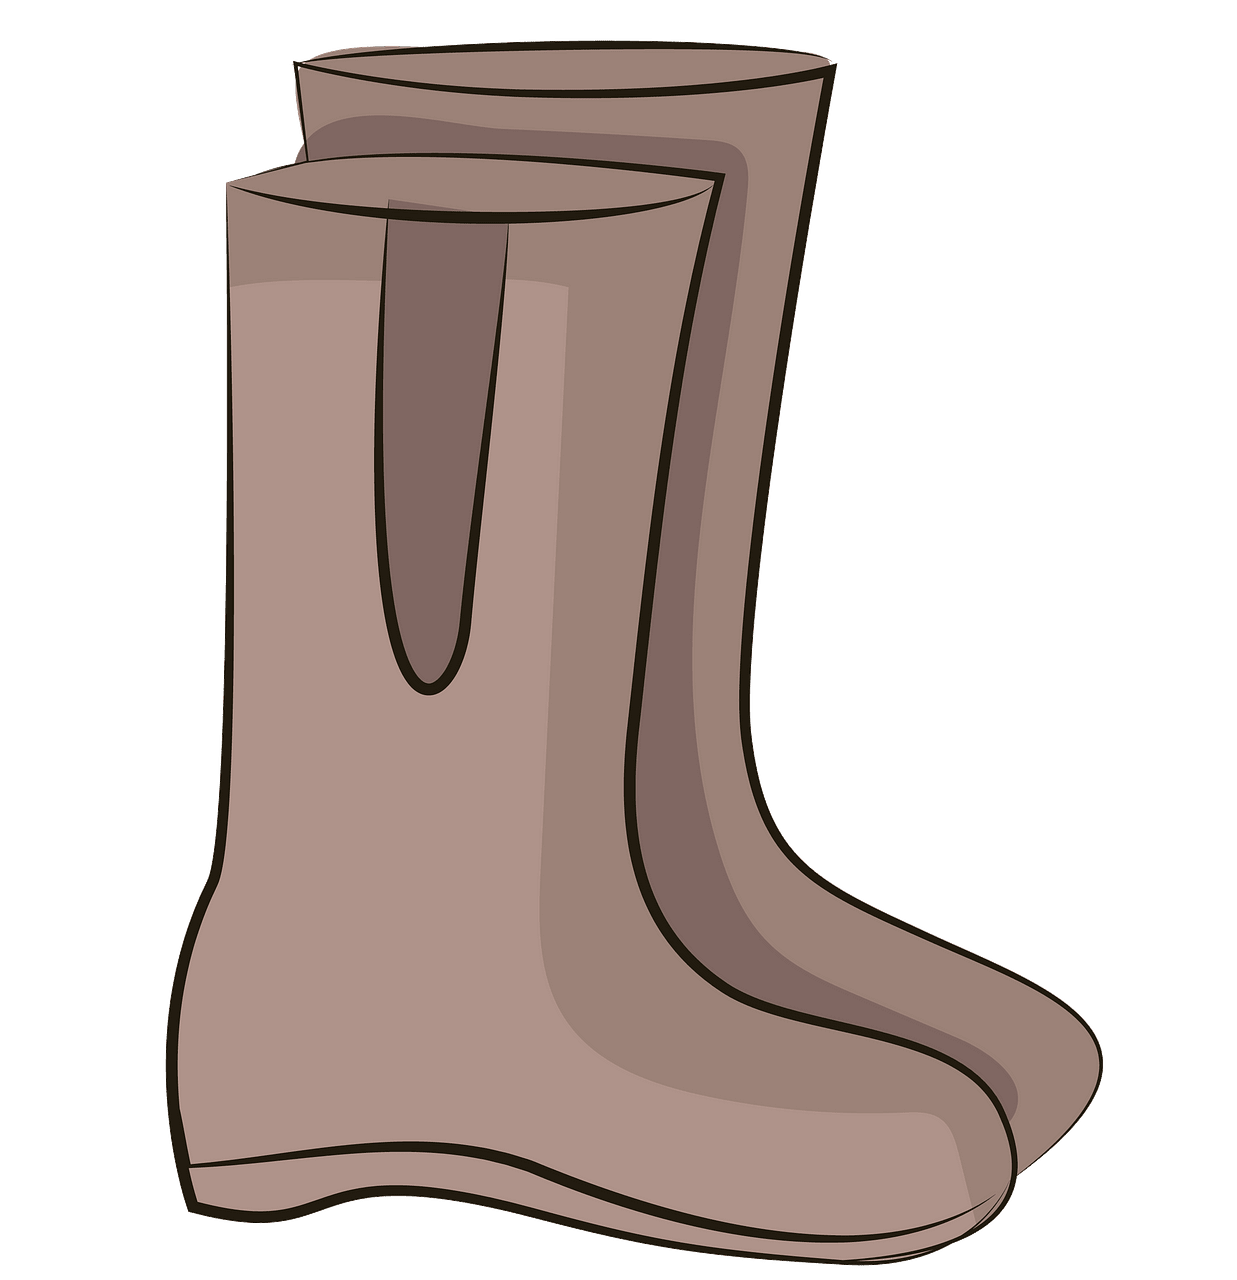 Rain boots clipart. Free download..